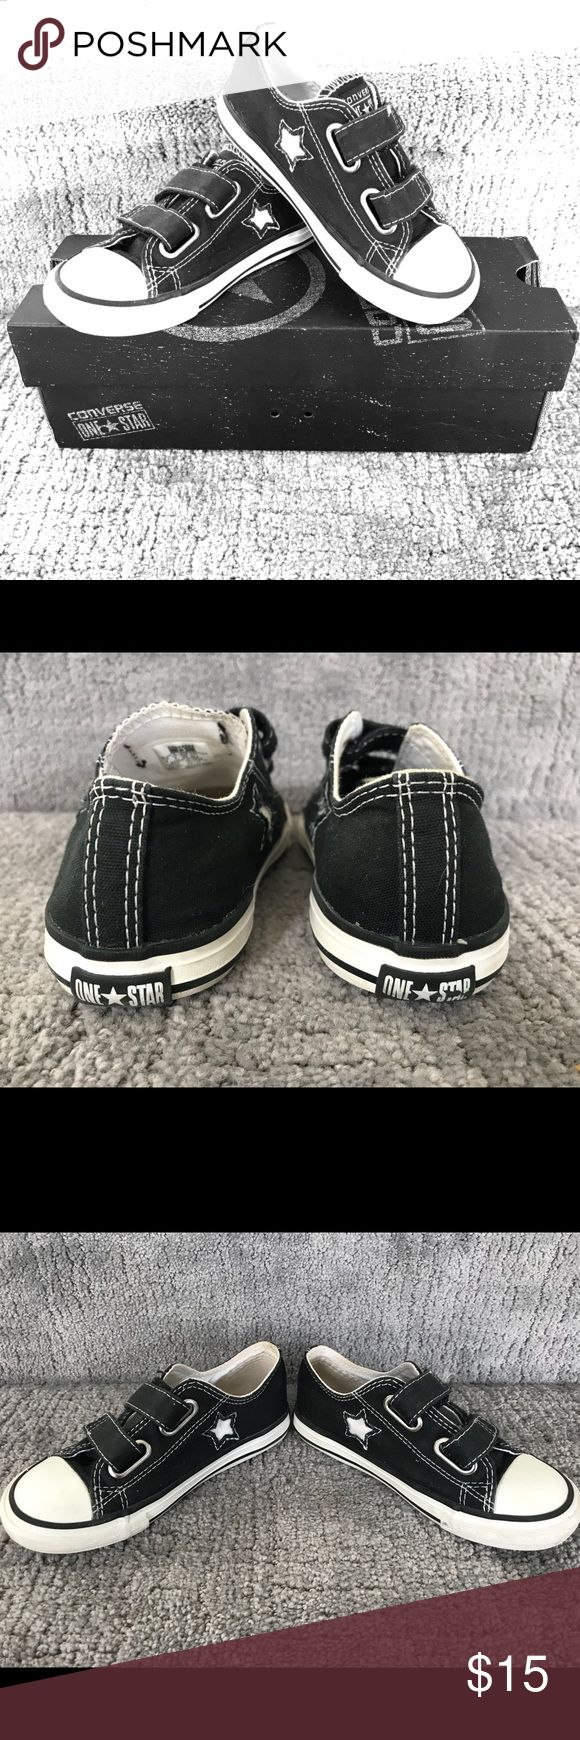 Infant/Toddler Black converse sneakers size 9 Excellent  used condition black infant/toddler black converse sneakers - size 9 Converse Shoes Sneakers